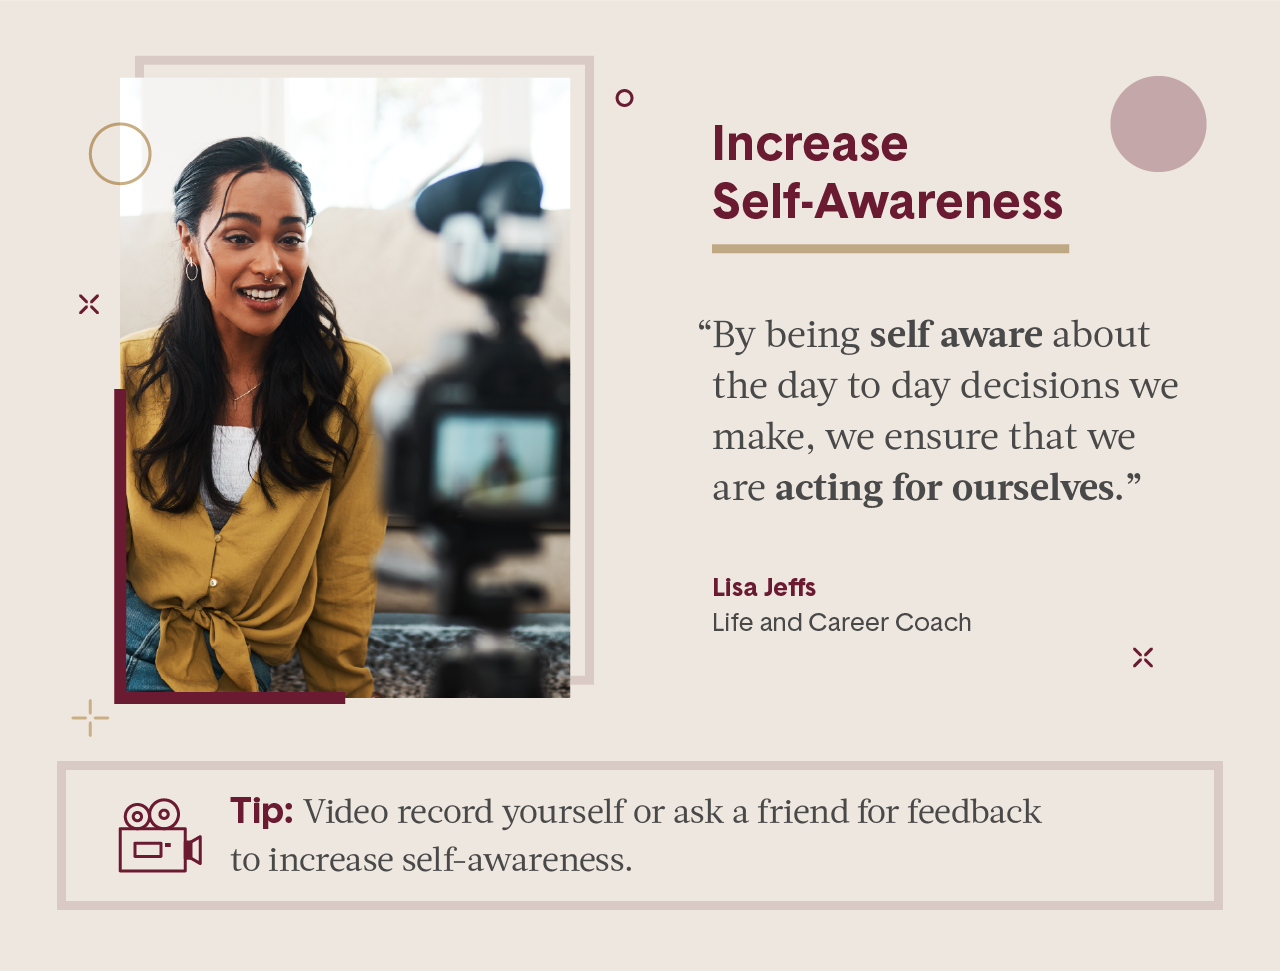 Pink square visual including quote from female expert in business and picture of women wearing a button down yellow shirt filming hersel